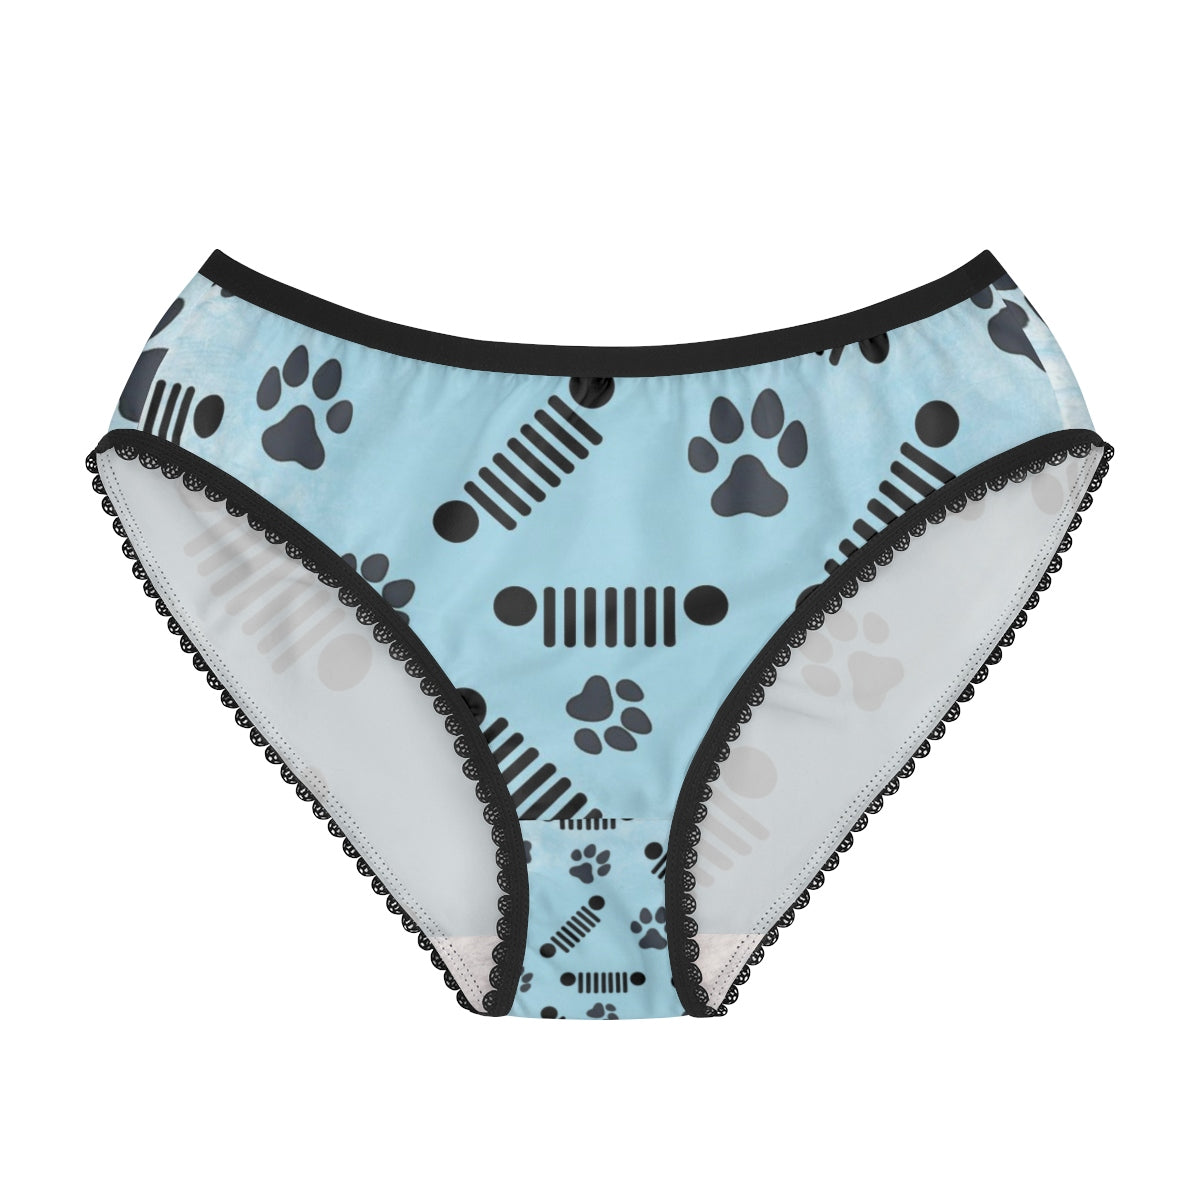 Blue jeep pet paw women's Briefs